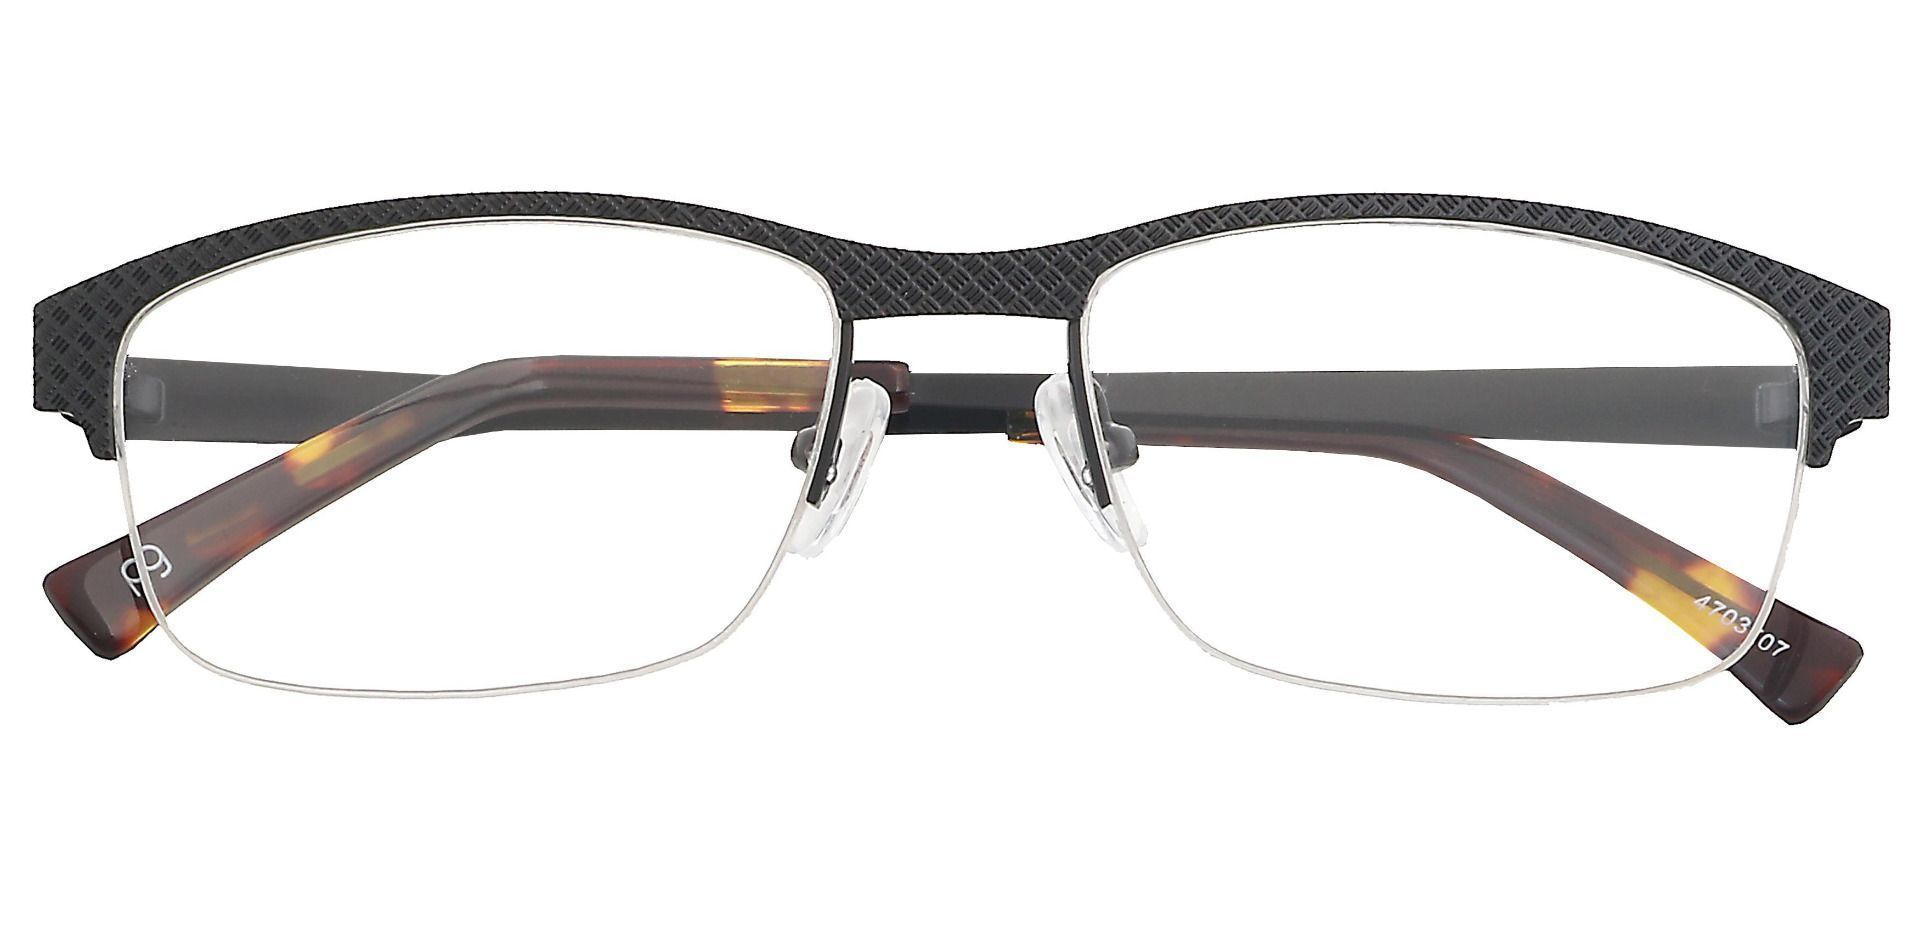 Bret Rectangle Prescription Glasses - Black